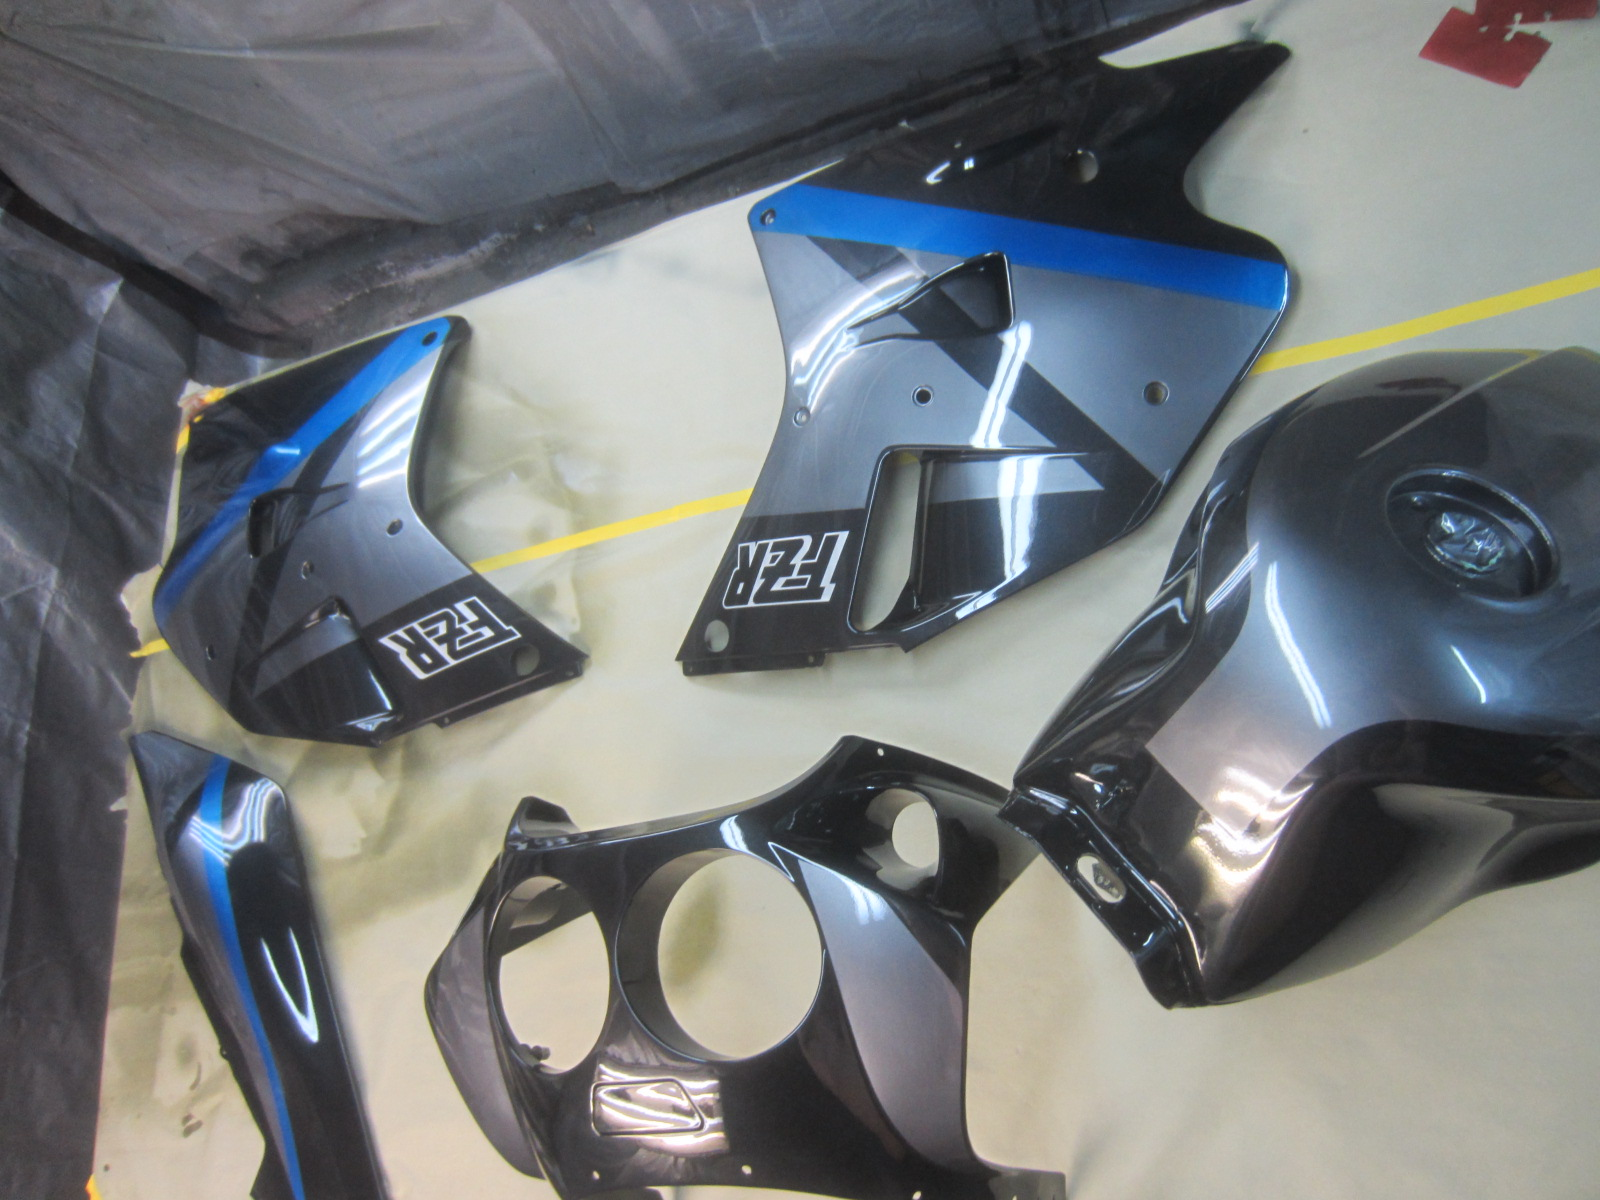 1990 FZR1000 Stock fairing and color scheme repair. Everything is done in paint accept our in-house